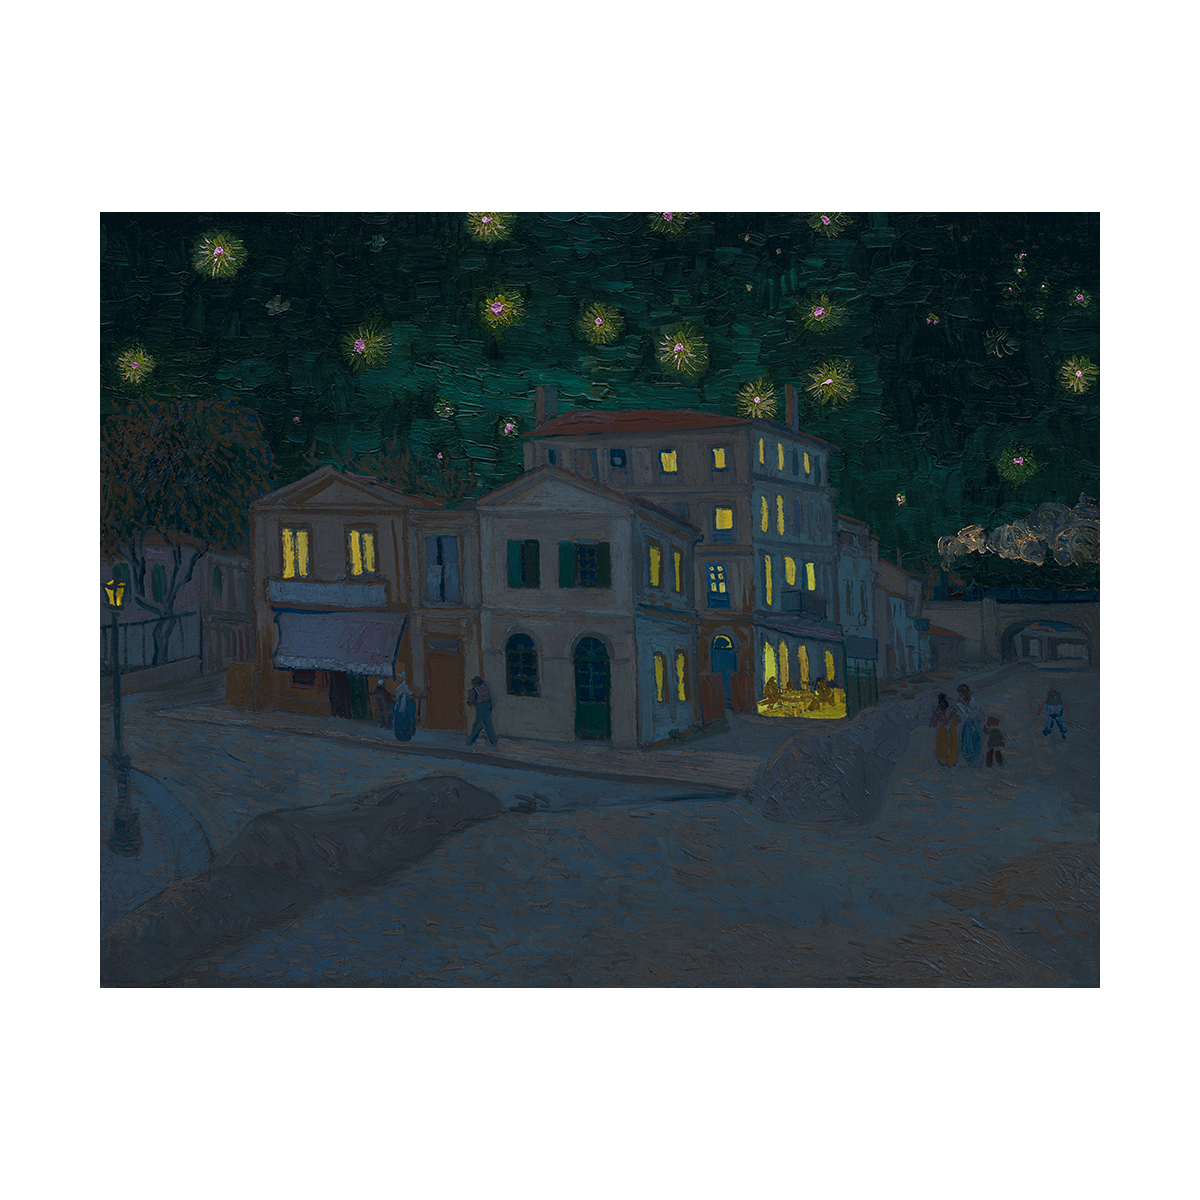 A night time installment of van Gogh's The Street or The Yellow House